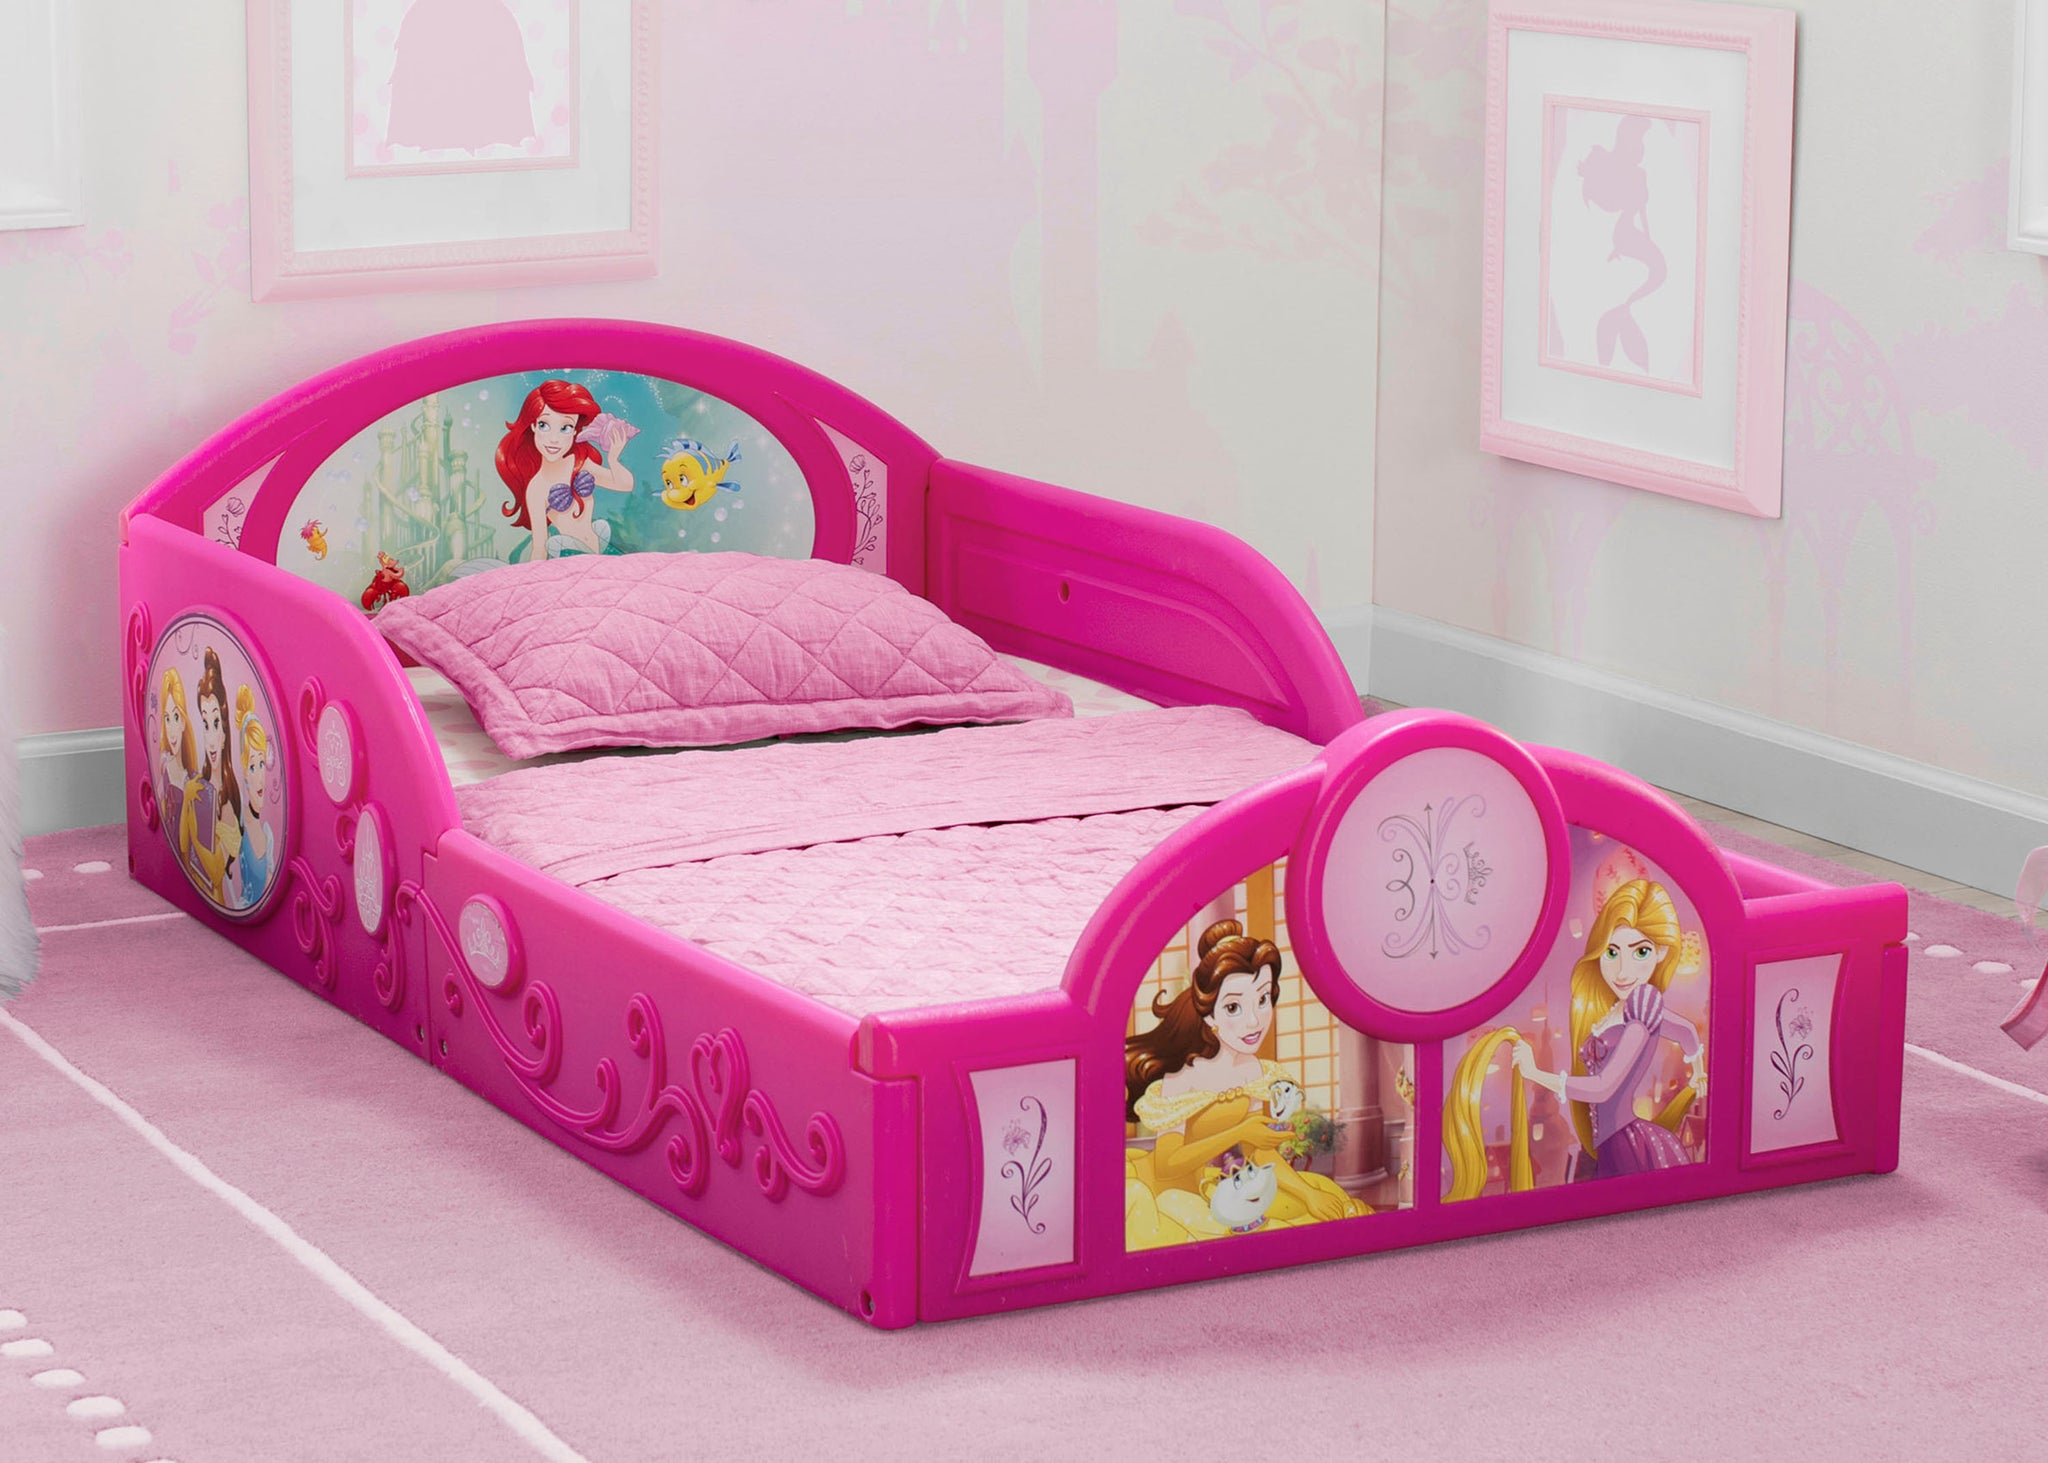 Princess Deluxe Toddler Bed with Attached Guardrails